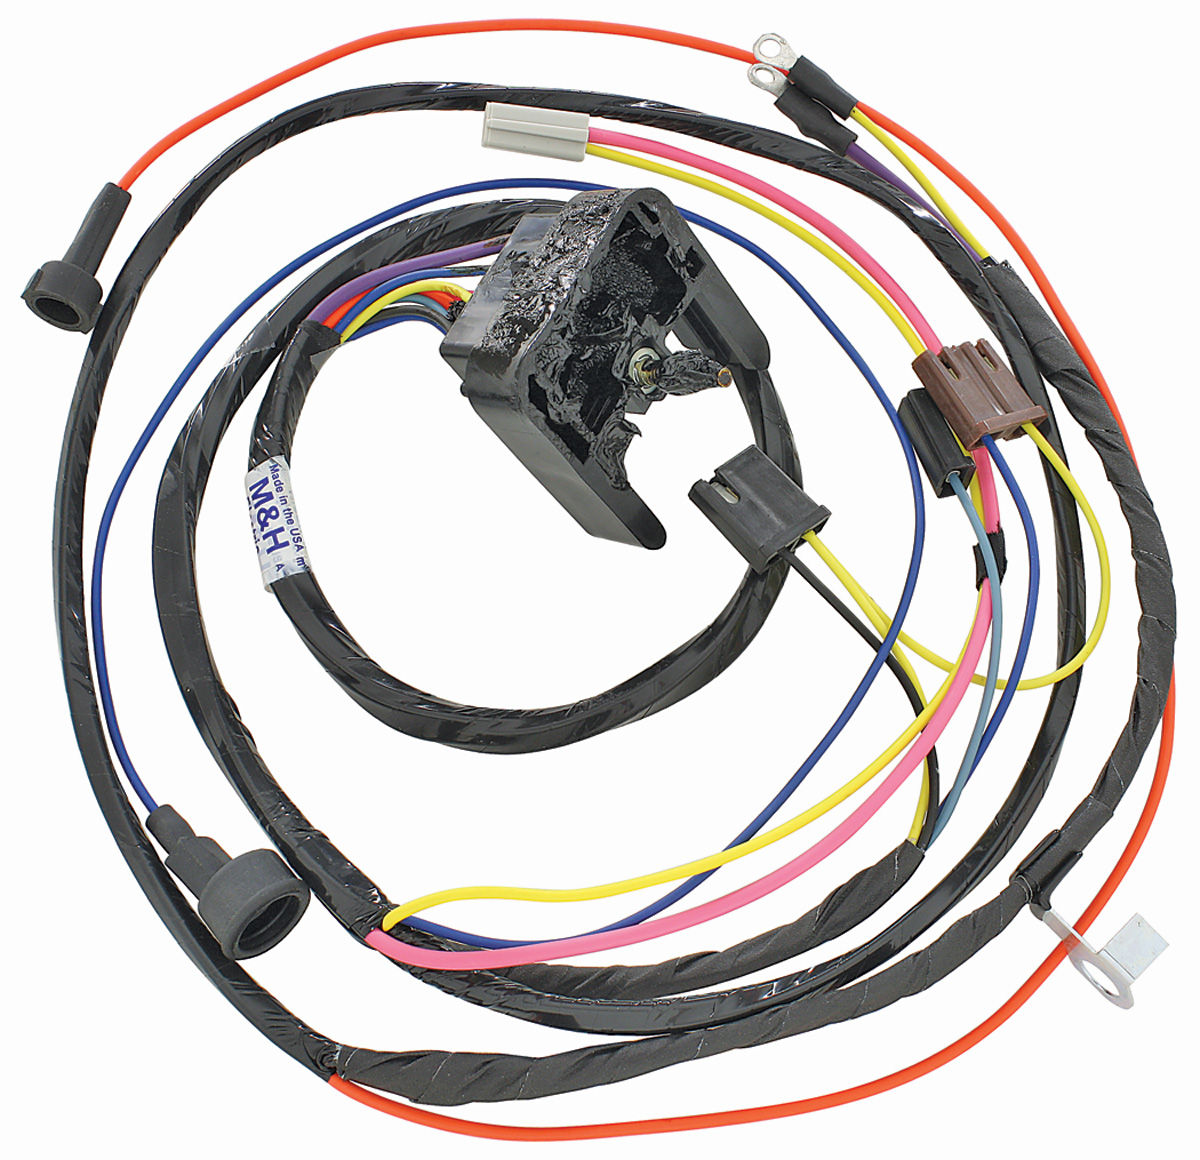 m h 1968 69 el camino engine harness 396 hei w warning lights opgi com rh opgi com El Camino Accessories 1985 El Camino Paint Codes